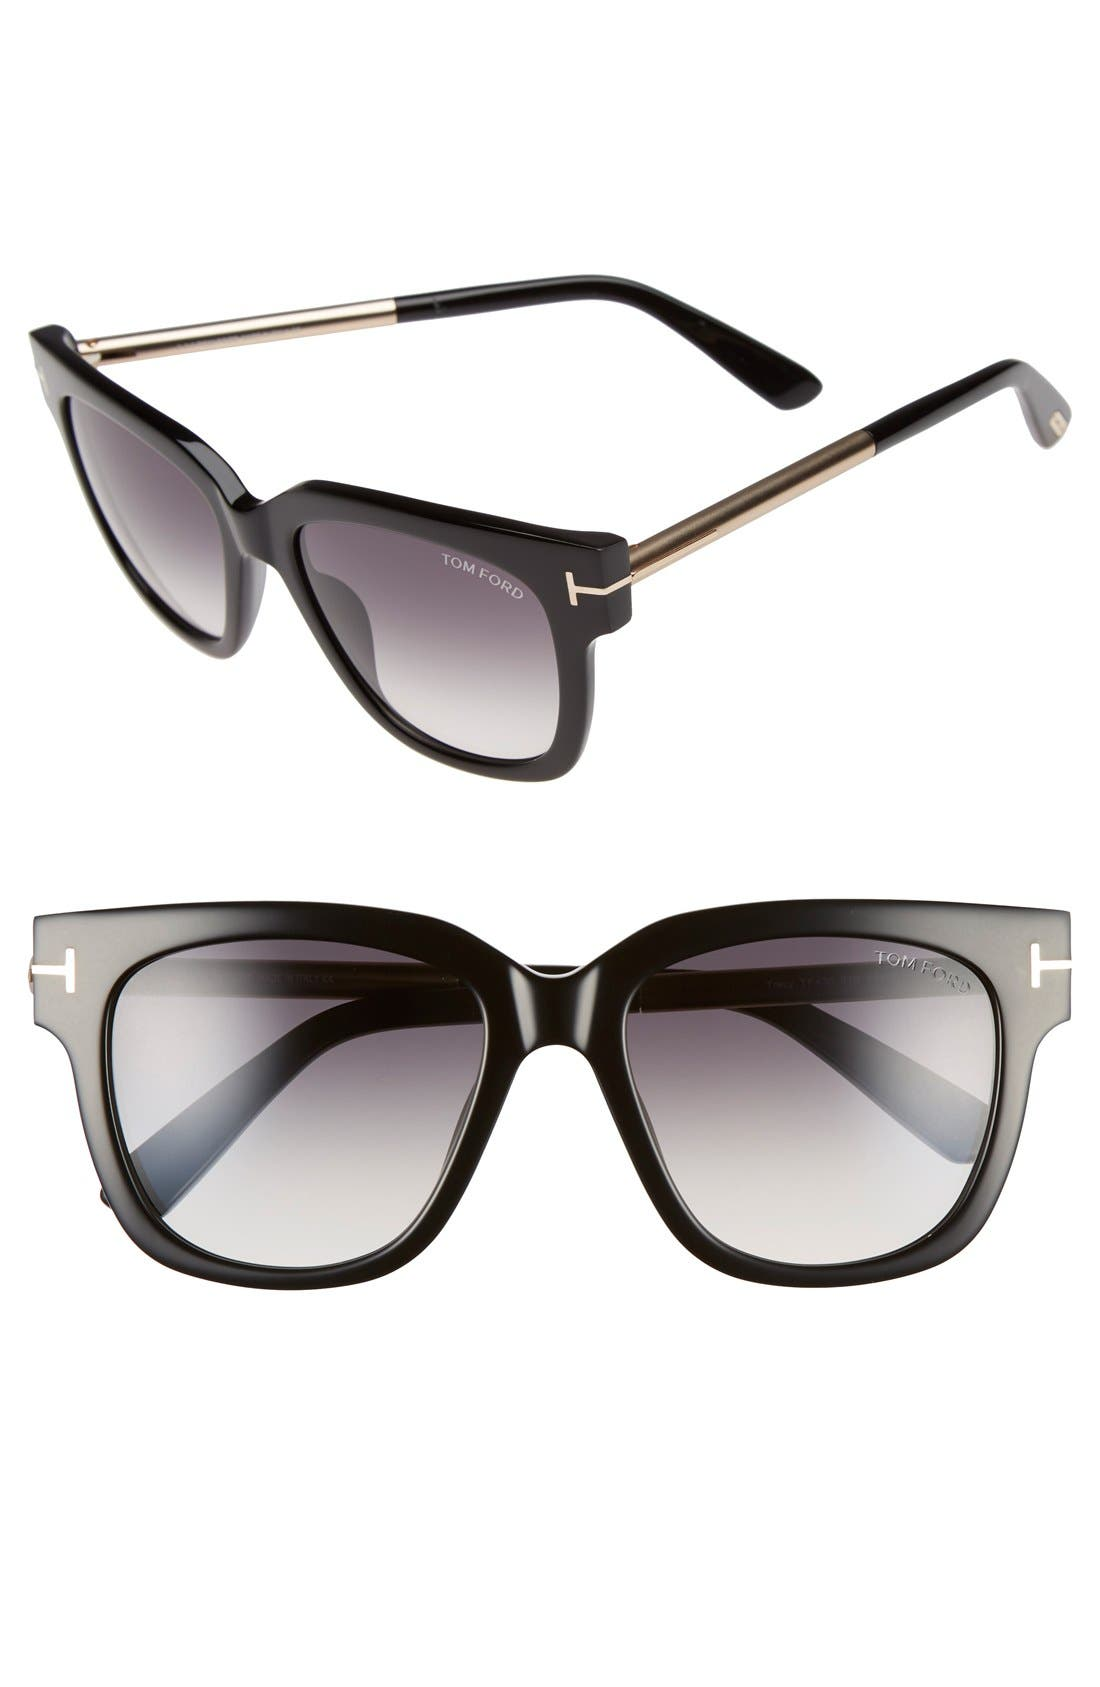 Main Image - Tom Ford 'Tracy' 53mm Retro Sunglasses